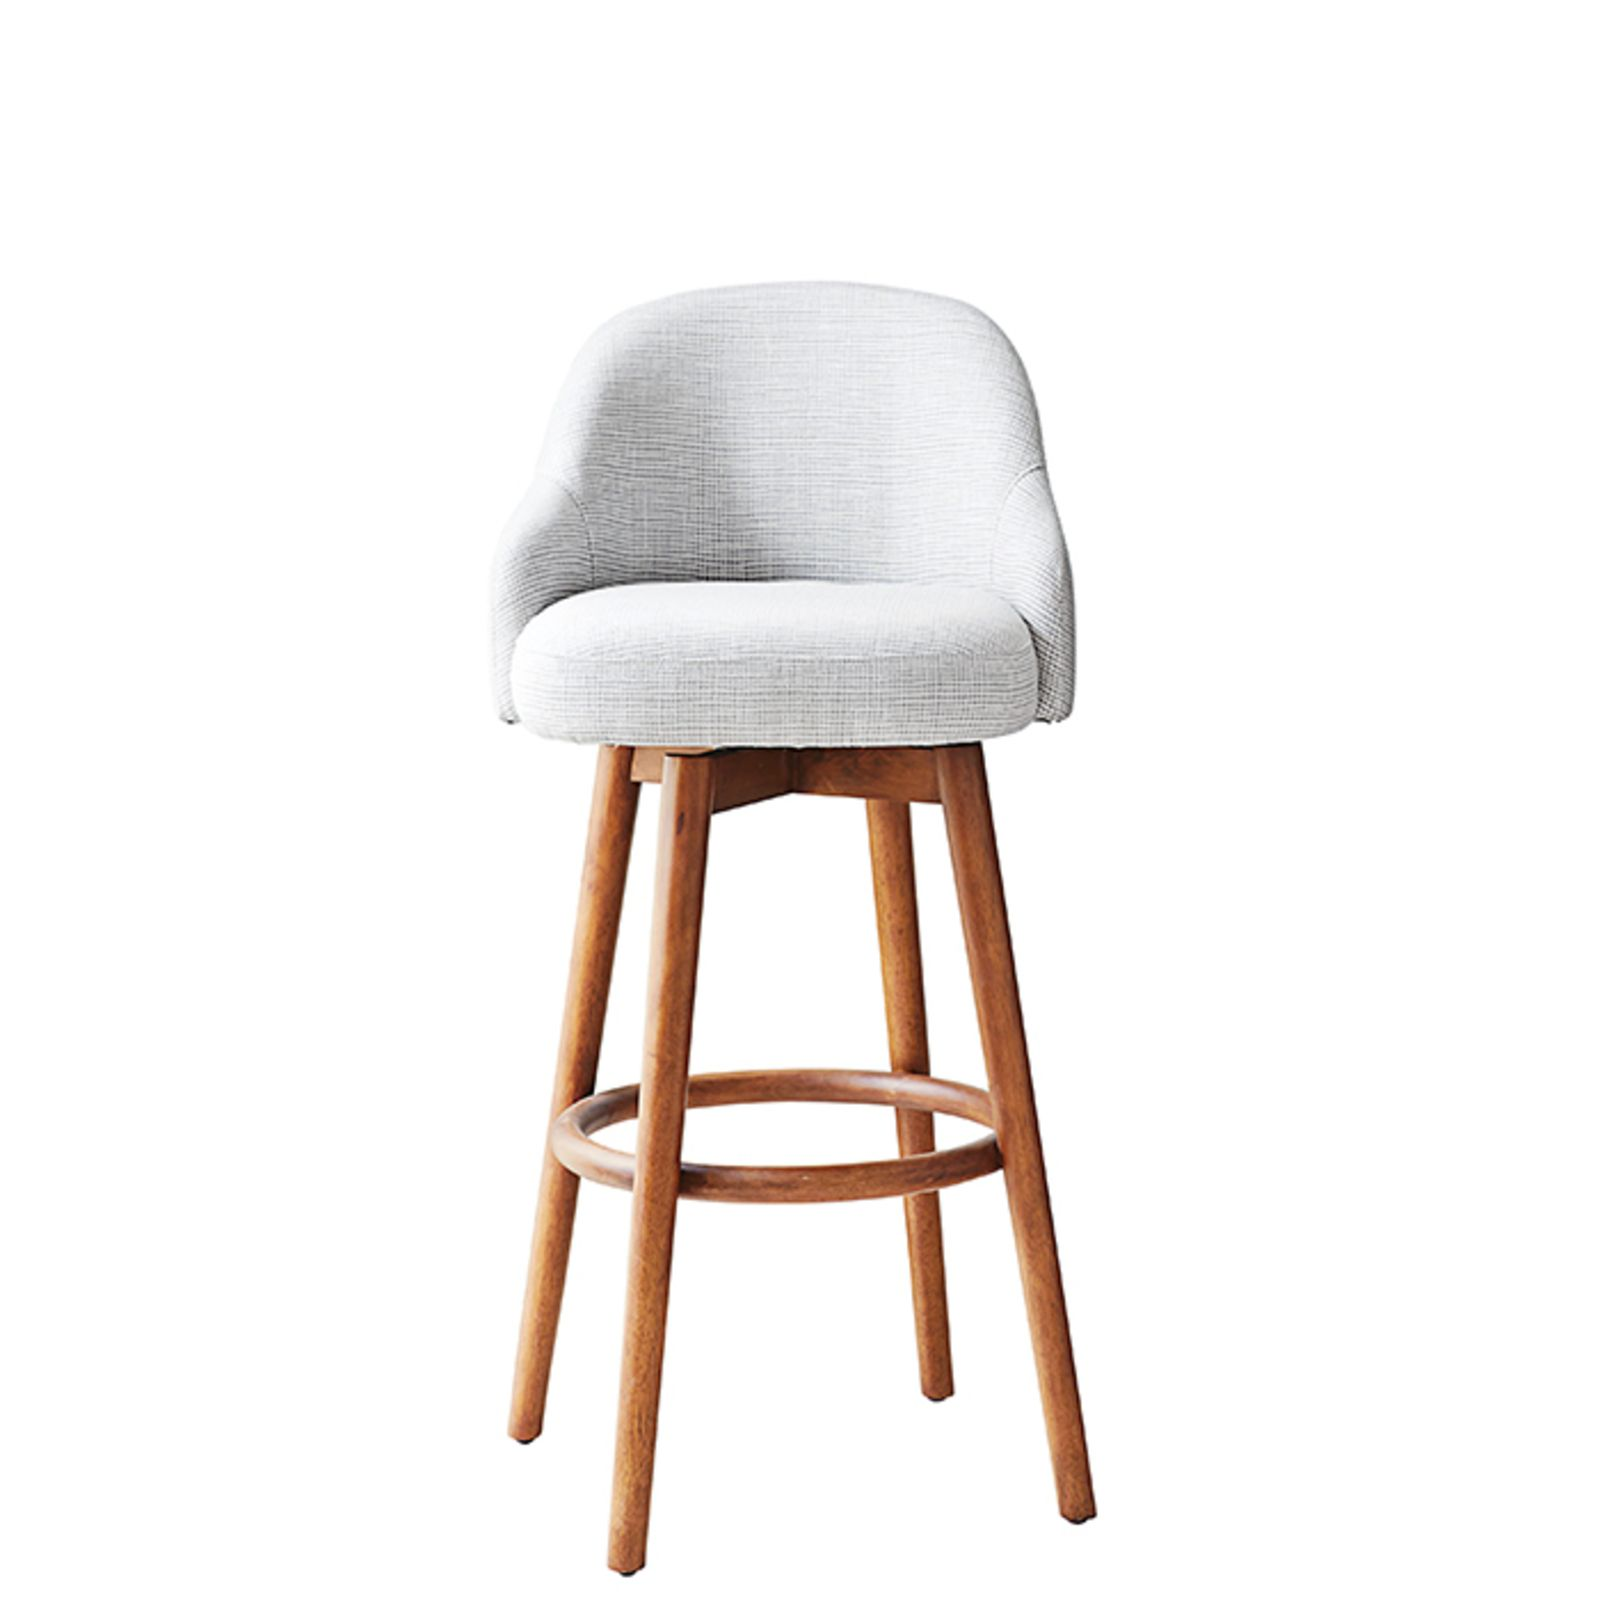 How To Find The Perfect Modern Bar Stool Modern Bar Stools Upholstered Bar Stools Designer Bar Stools